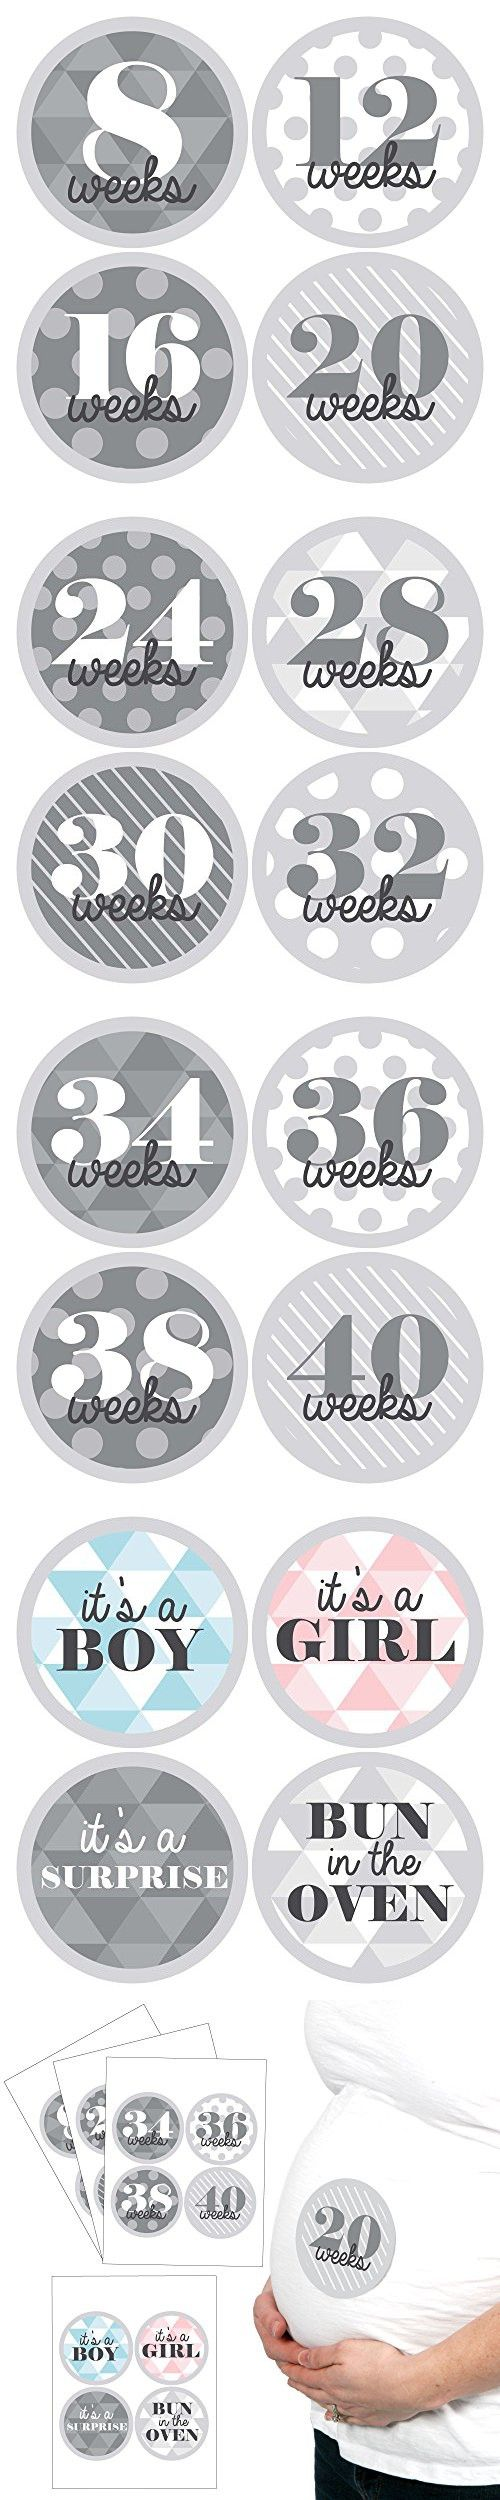 Geometric Gray - Weekly Pregnancy Belly Stickers Set - 16